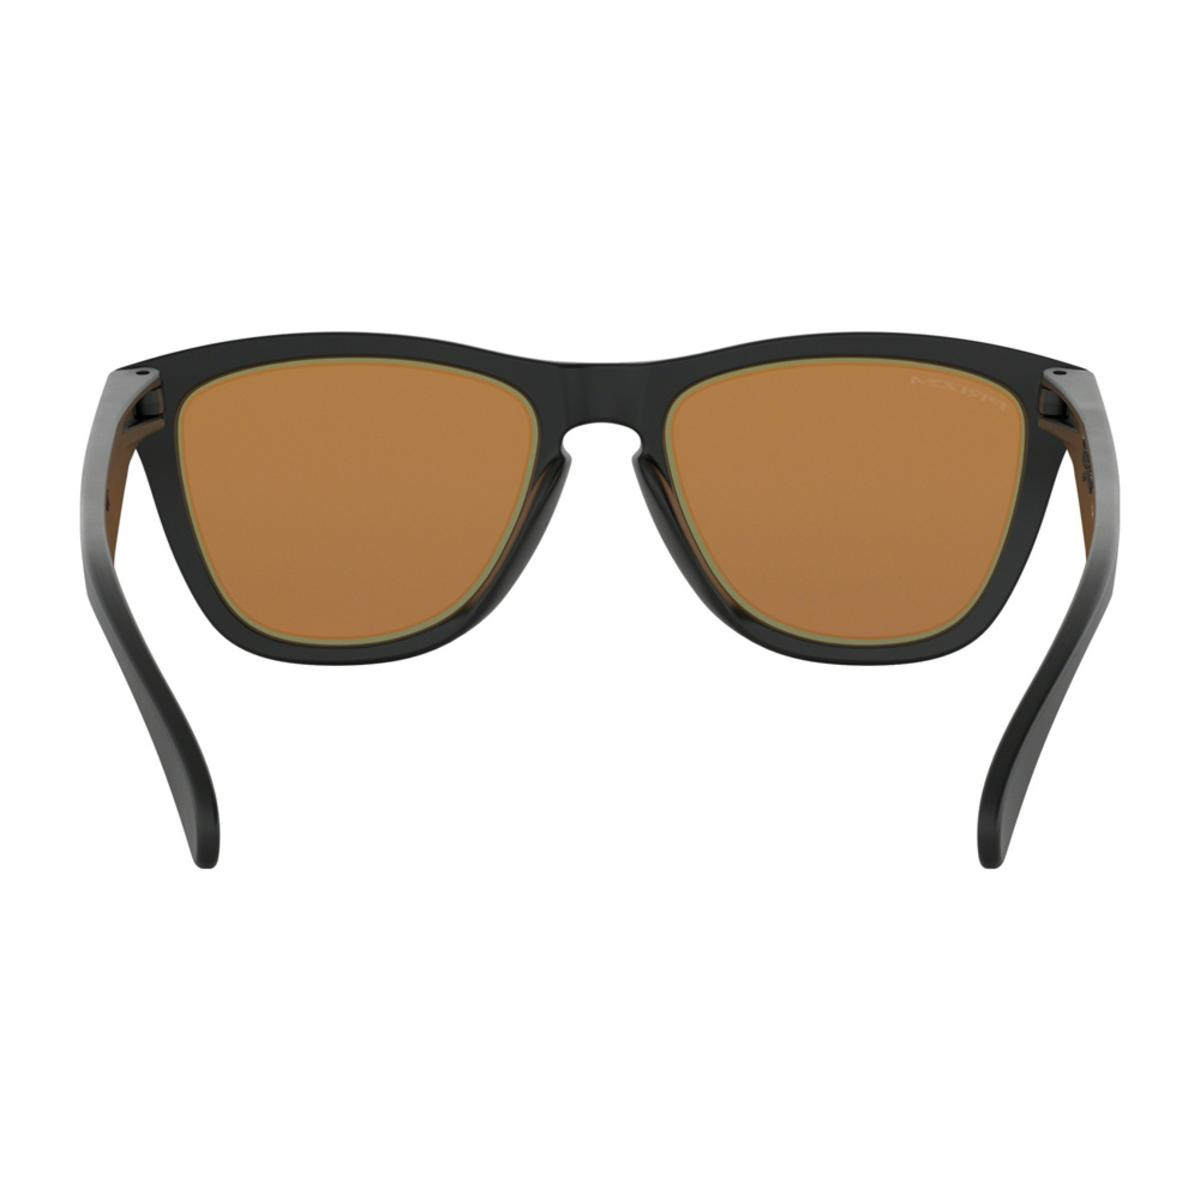 6e962727d3 Oakley Frogskins Fire and Ice Collection Matte Black Sunglasses w Prizm  Bronze - The Warming Store